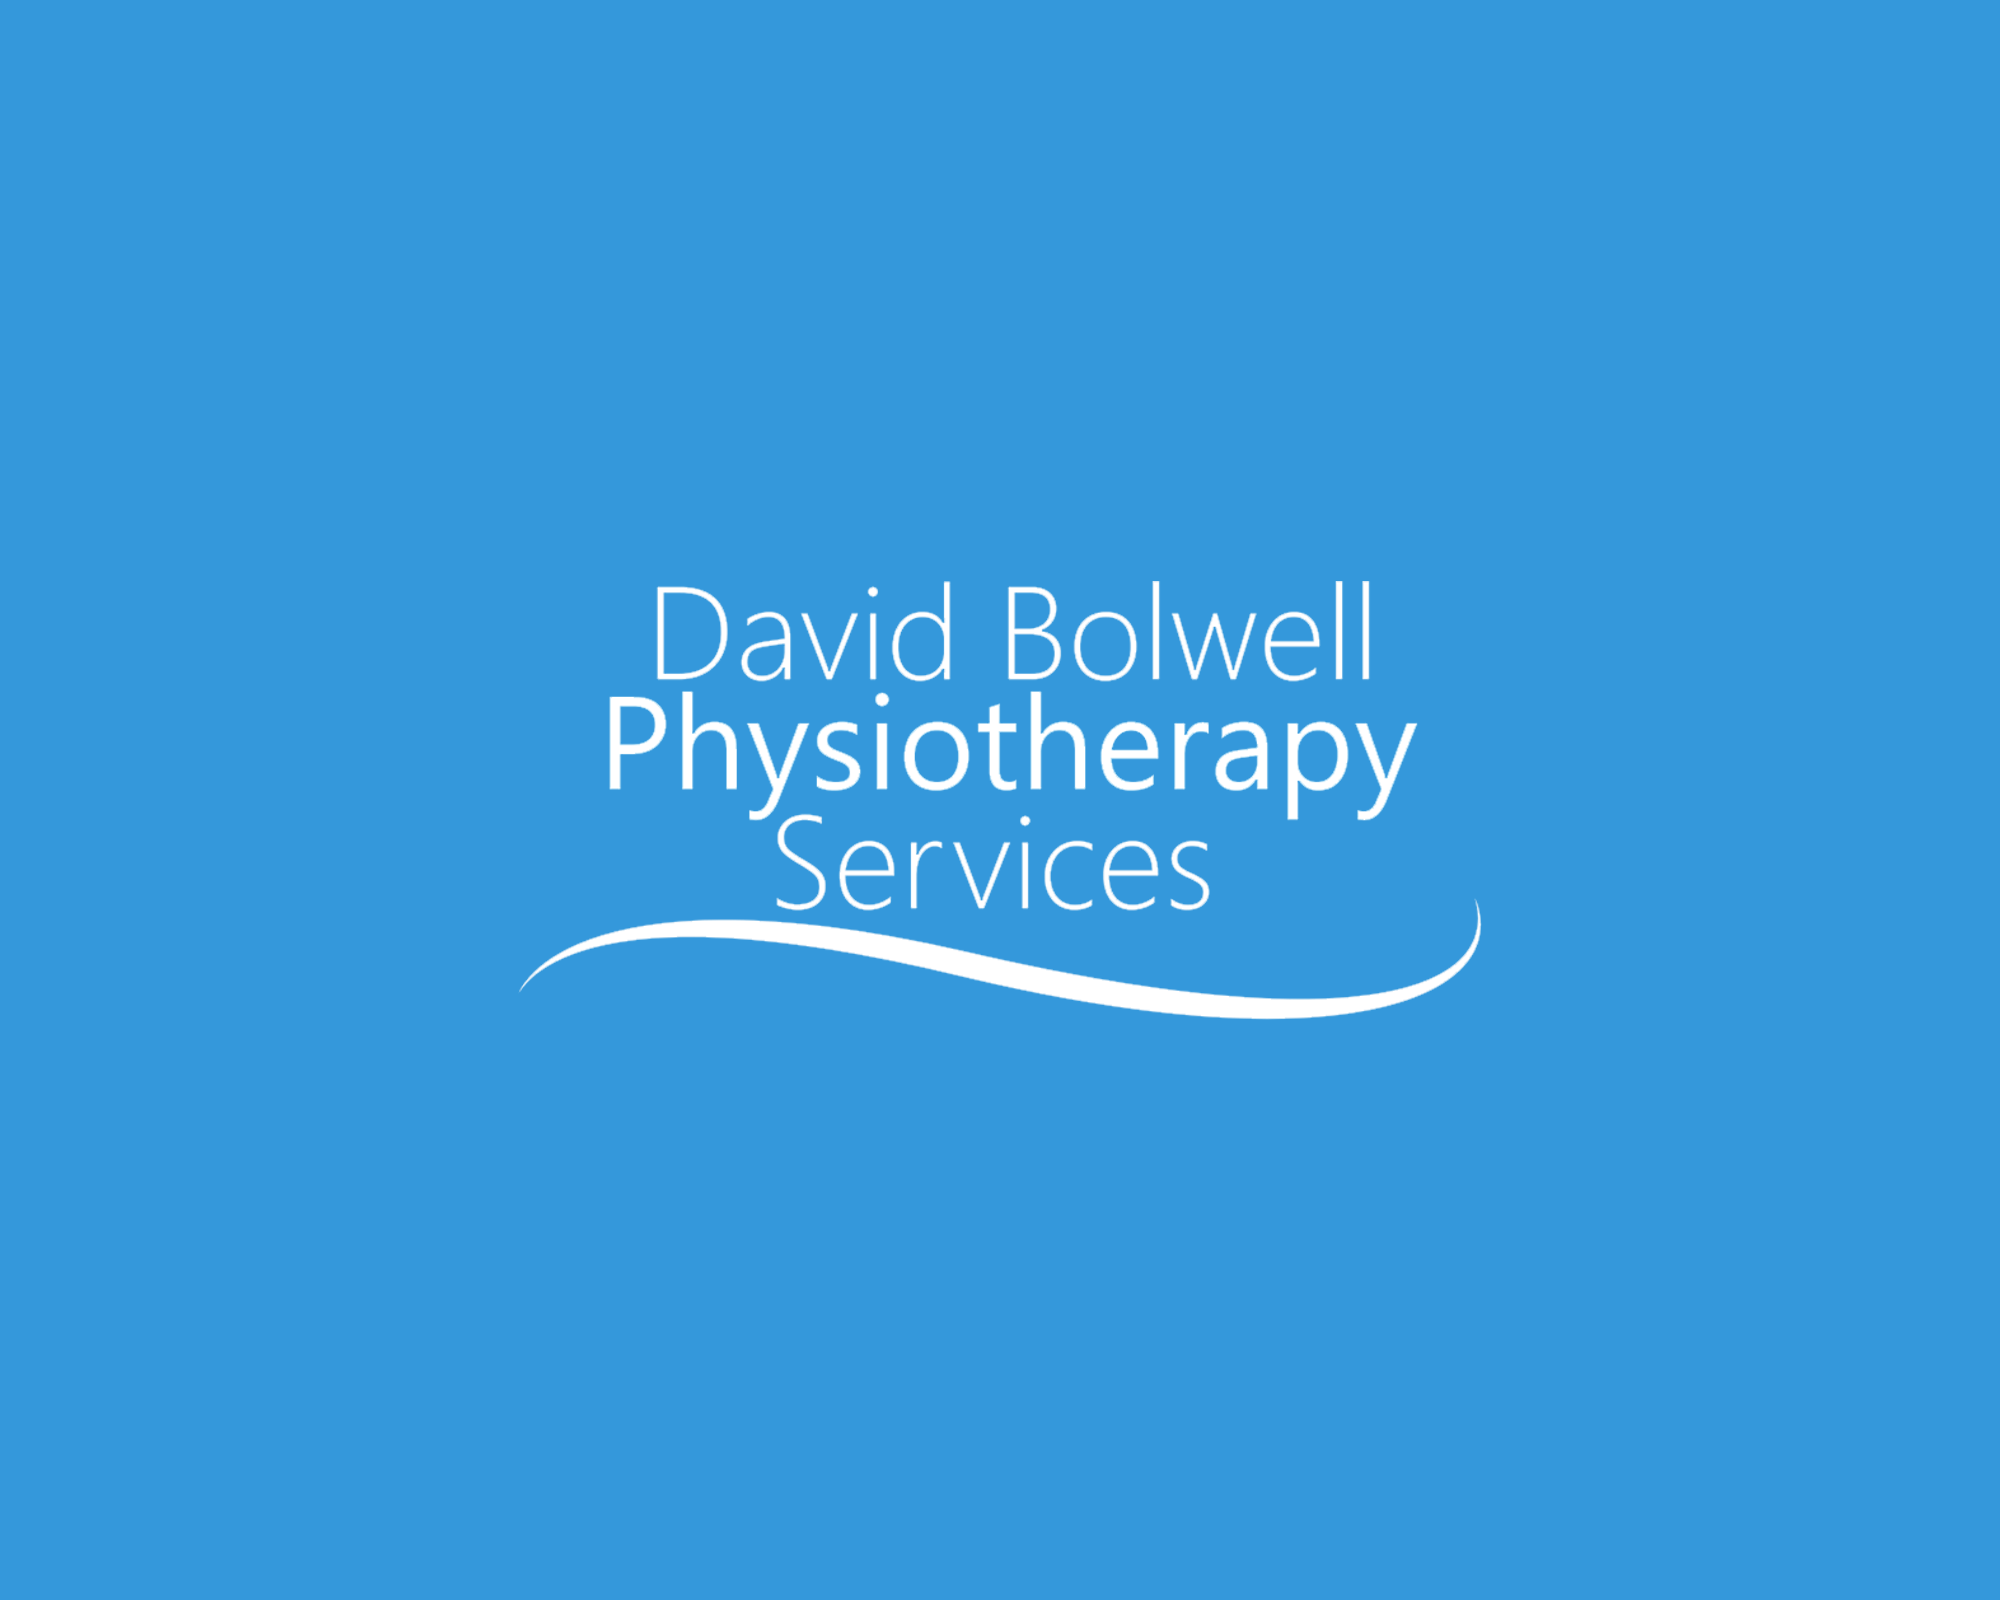 david bolwell physiotherapy services Logo